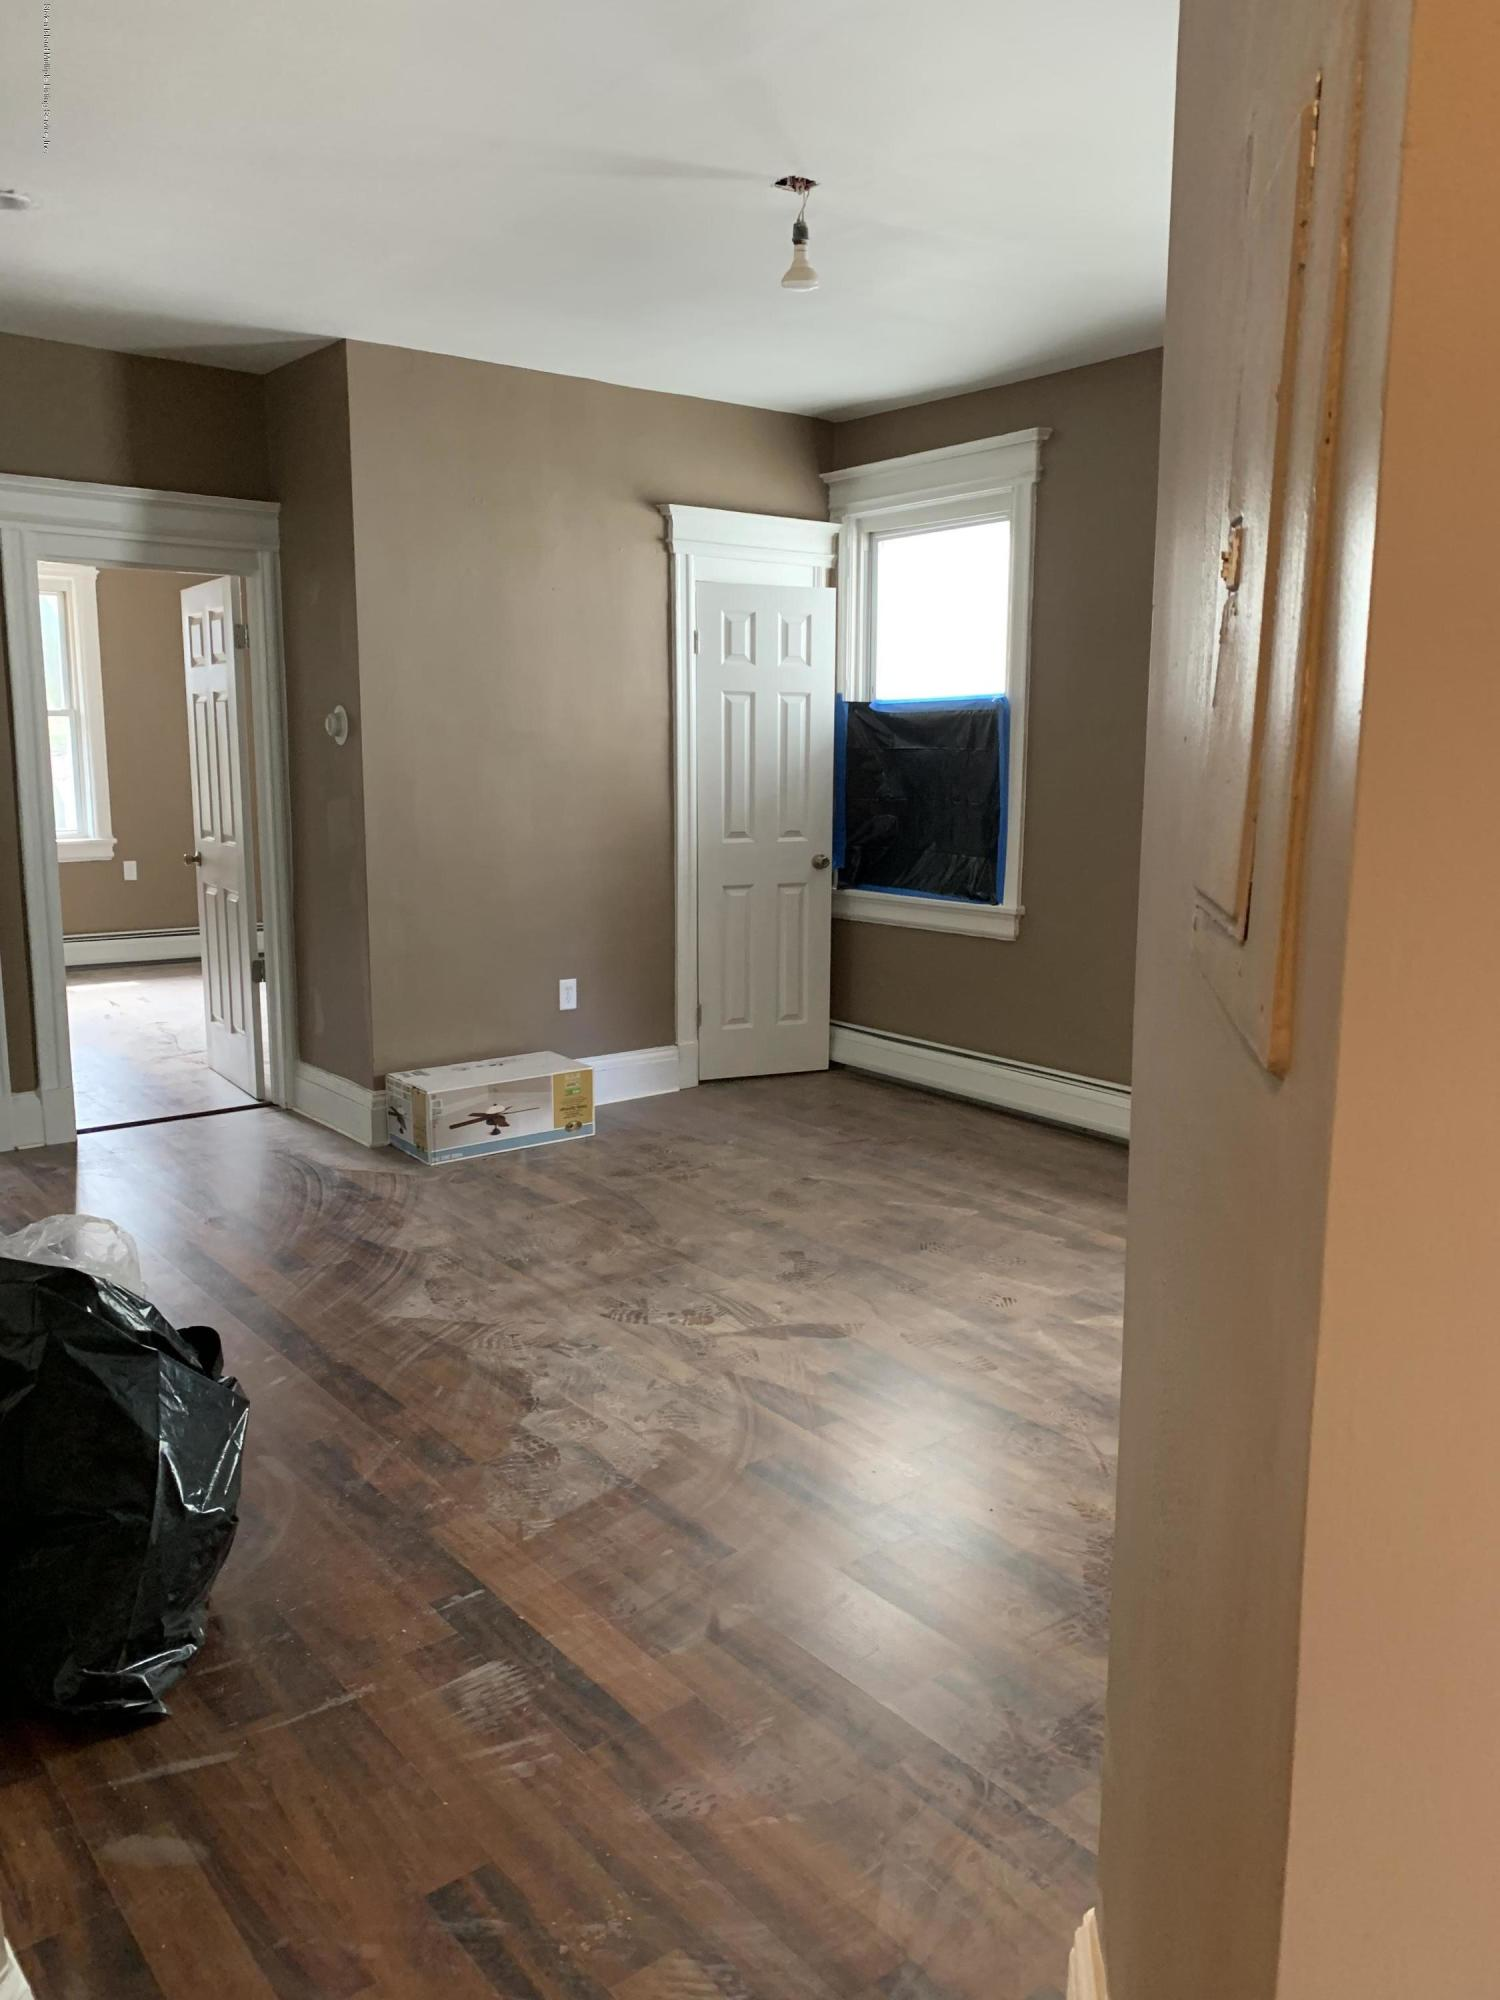 198 Victory Boulevard,Staten Island,New York,10301,United States,4 Bedrooms Bedrooms,6 Rooms Rooms,1 BathroomBathrooms,Res-Rental,Victory,1128116